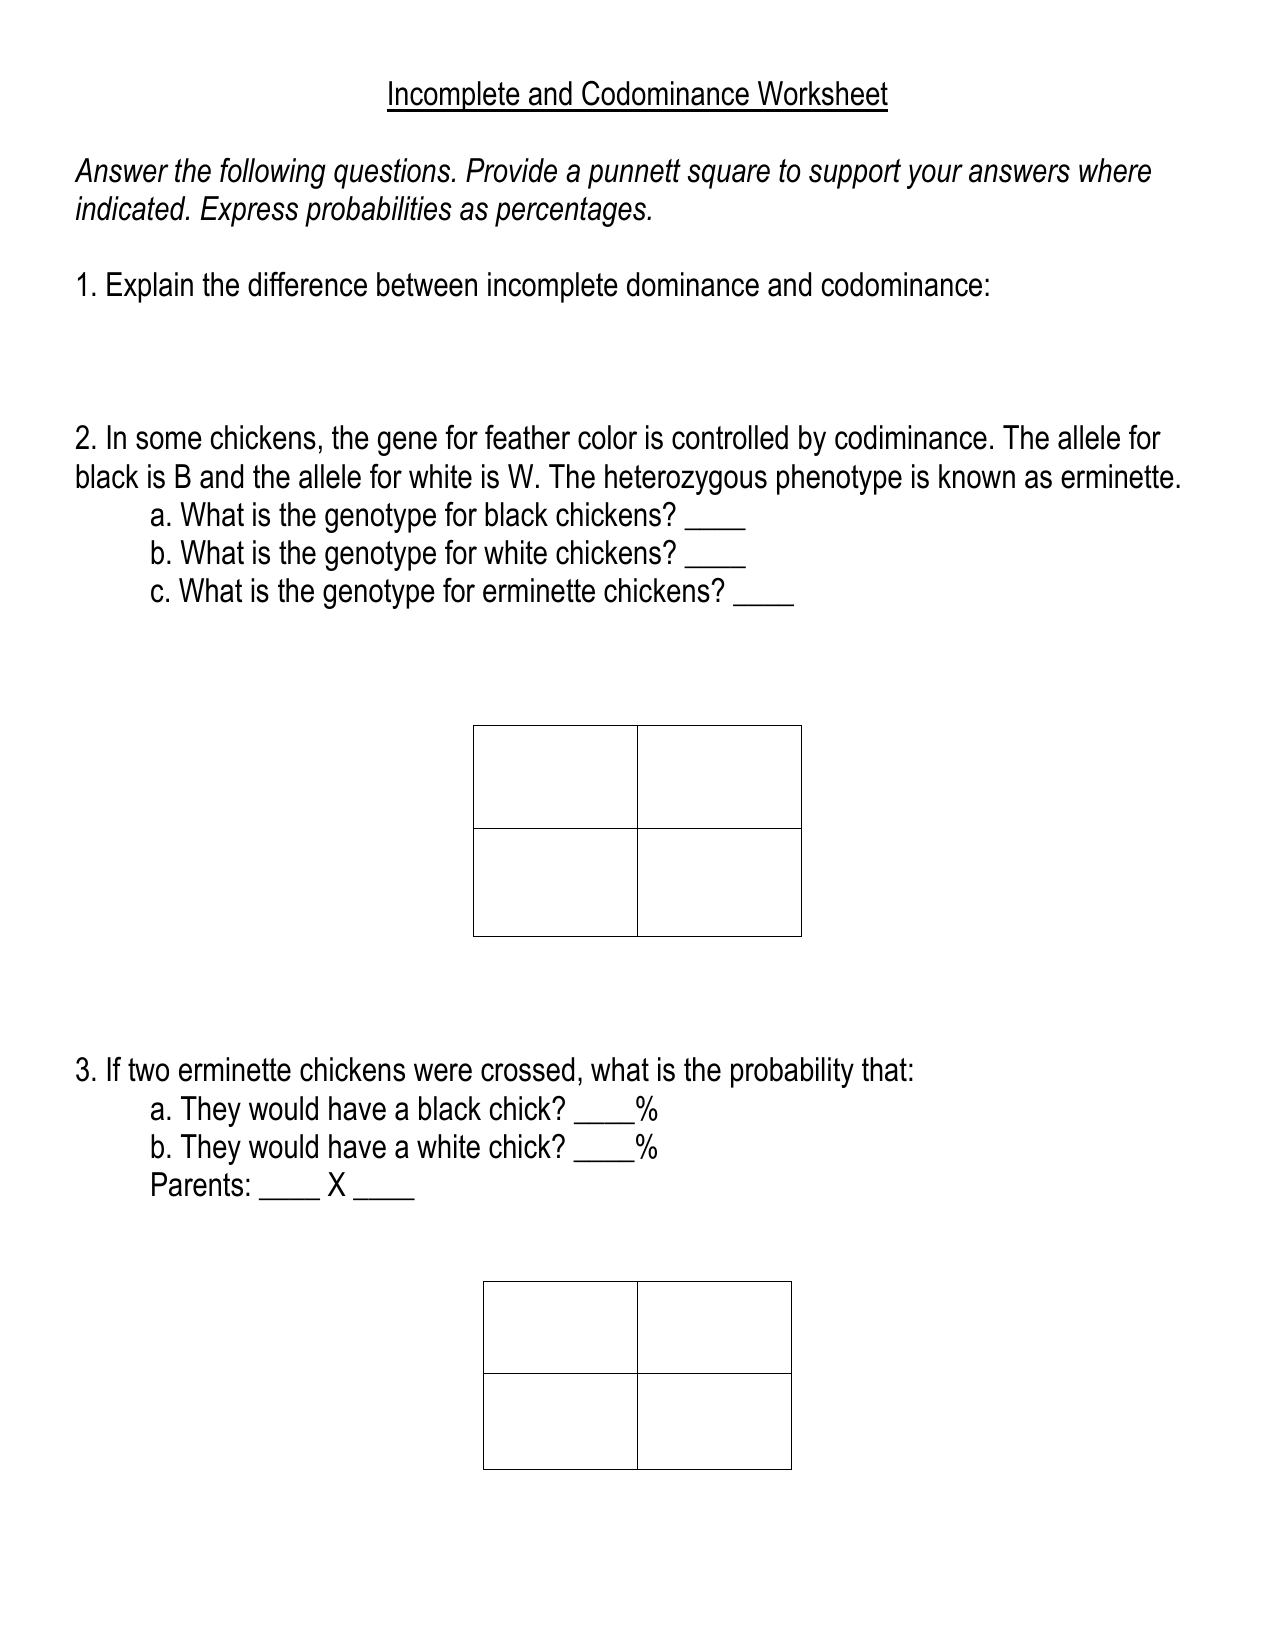 further Co Dominance and In plete Dominance Practice Problems besides In plete and Codominance Worksheet – Croefit moreover Excel  in plete dominance worksheet  In plete Dominance further Quiz   Worksheet   Multiple Alleles   Codominant Genes   Study likewise In plete And Codominance Worksheet   Lobo Black additionally In plete Dominance Worksheet  Blending Pun t Square Worksheet as well In plete Dominance and Codominance Worksheet Beautiful 23 also In plete and Codominance Worksheet also  likewise 23 Elegant In plete Dominance Worksheet Answers   Codedell likewise  additionally  as well KateHo Monohybrid And Dihybrid Crosses Worksheet Image Collections together with  also . on codominance and incomplete dominance worksheet